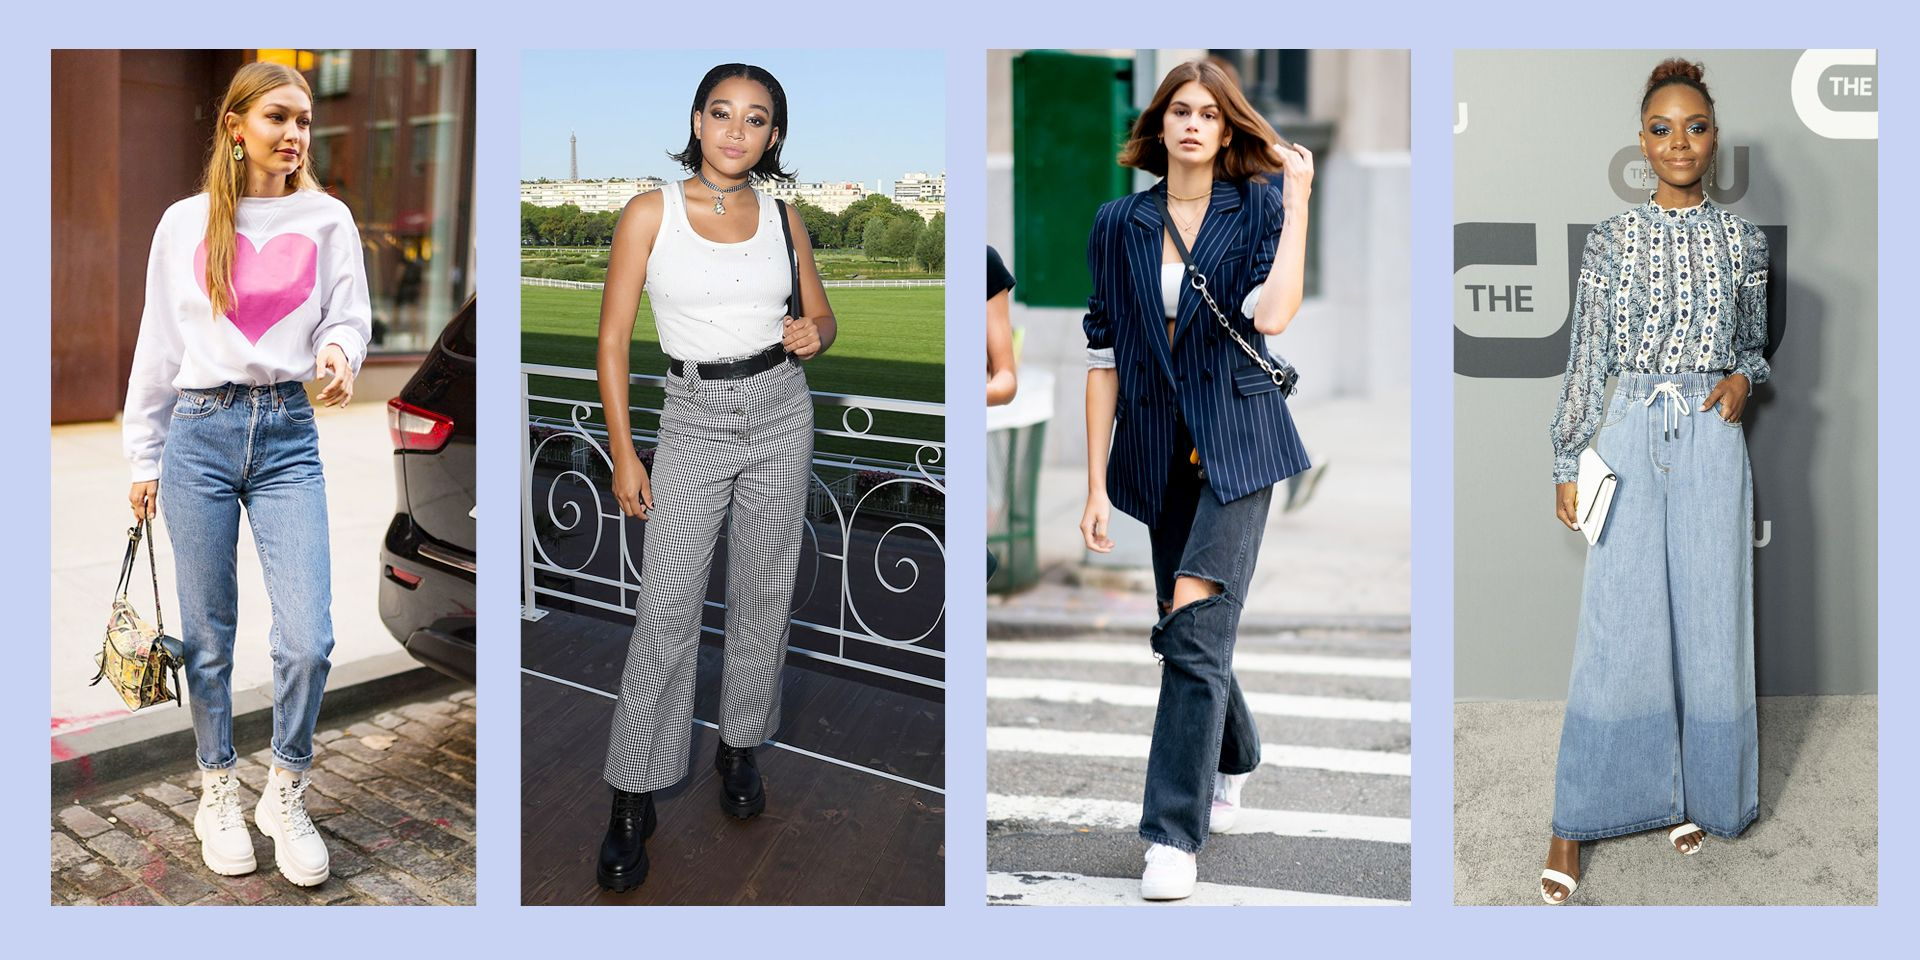 25 Best College Outfits for 2019 , What to Wear on a College